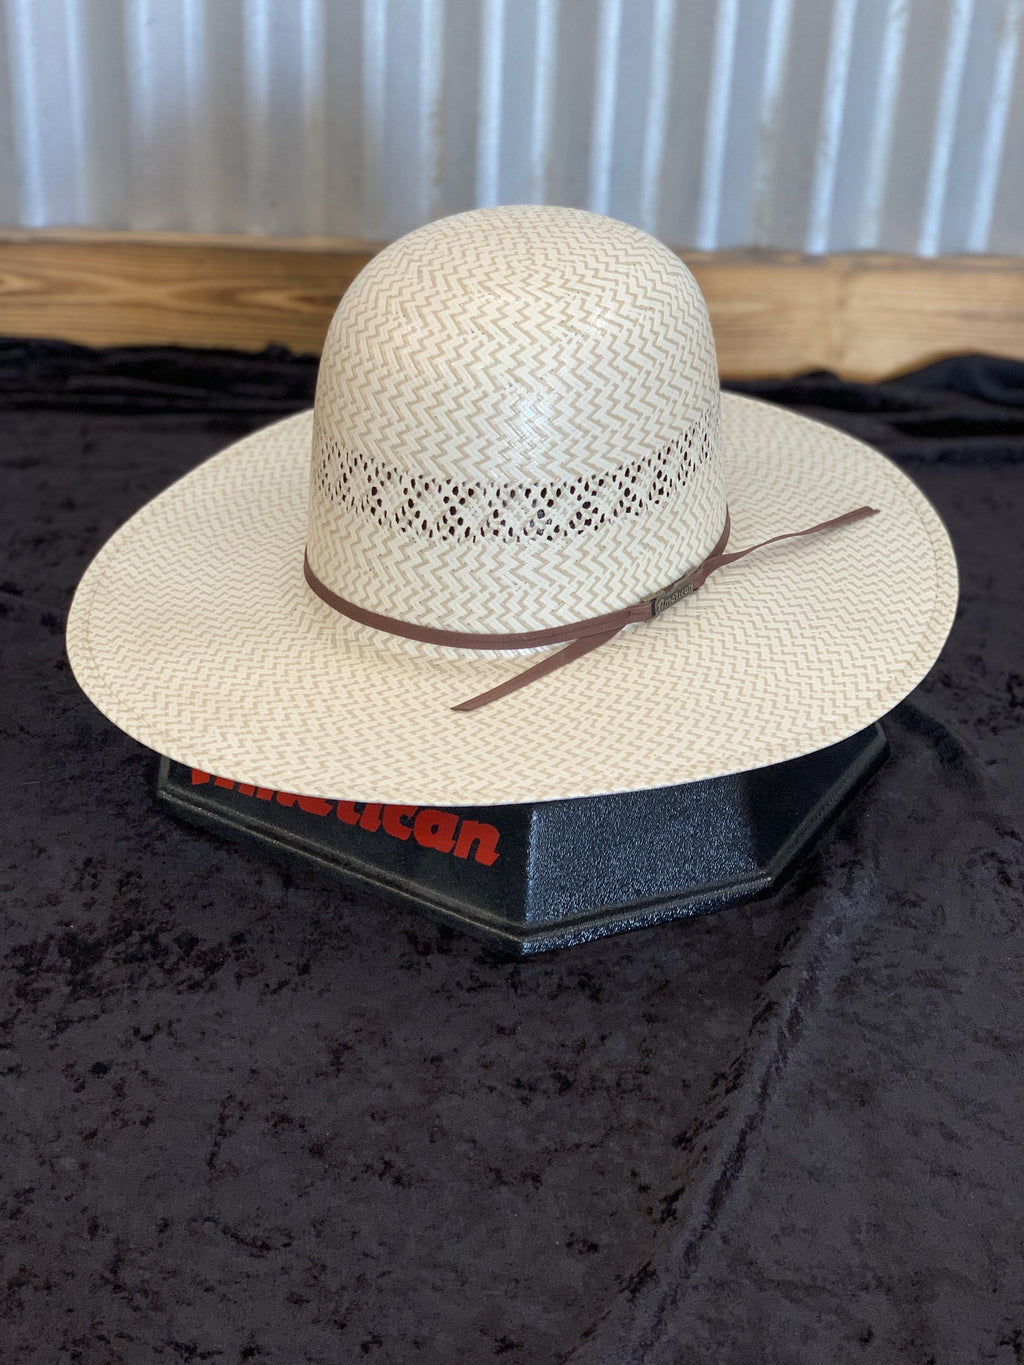 "American Hat Co. 5500 41/4"" Brim"